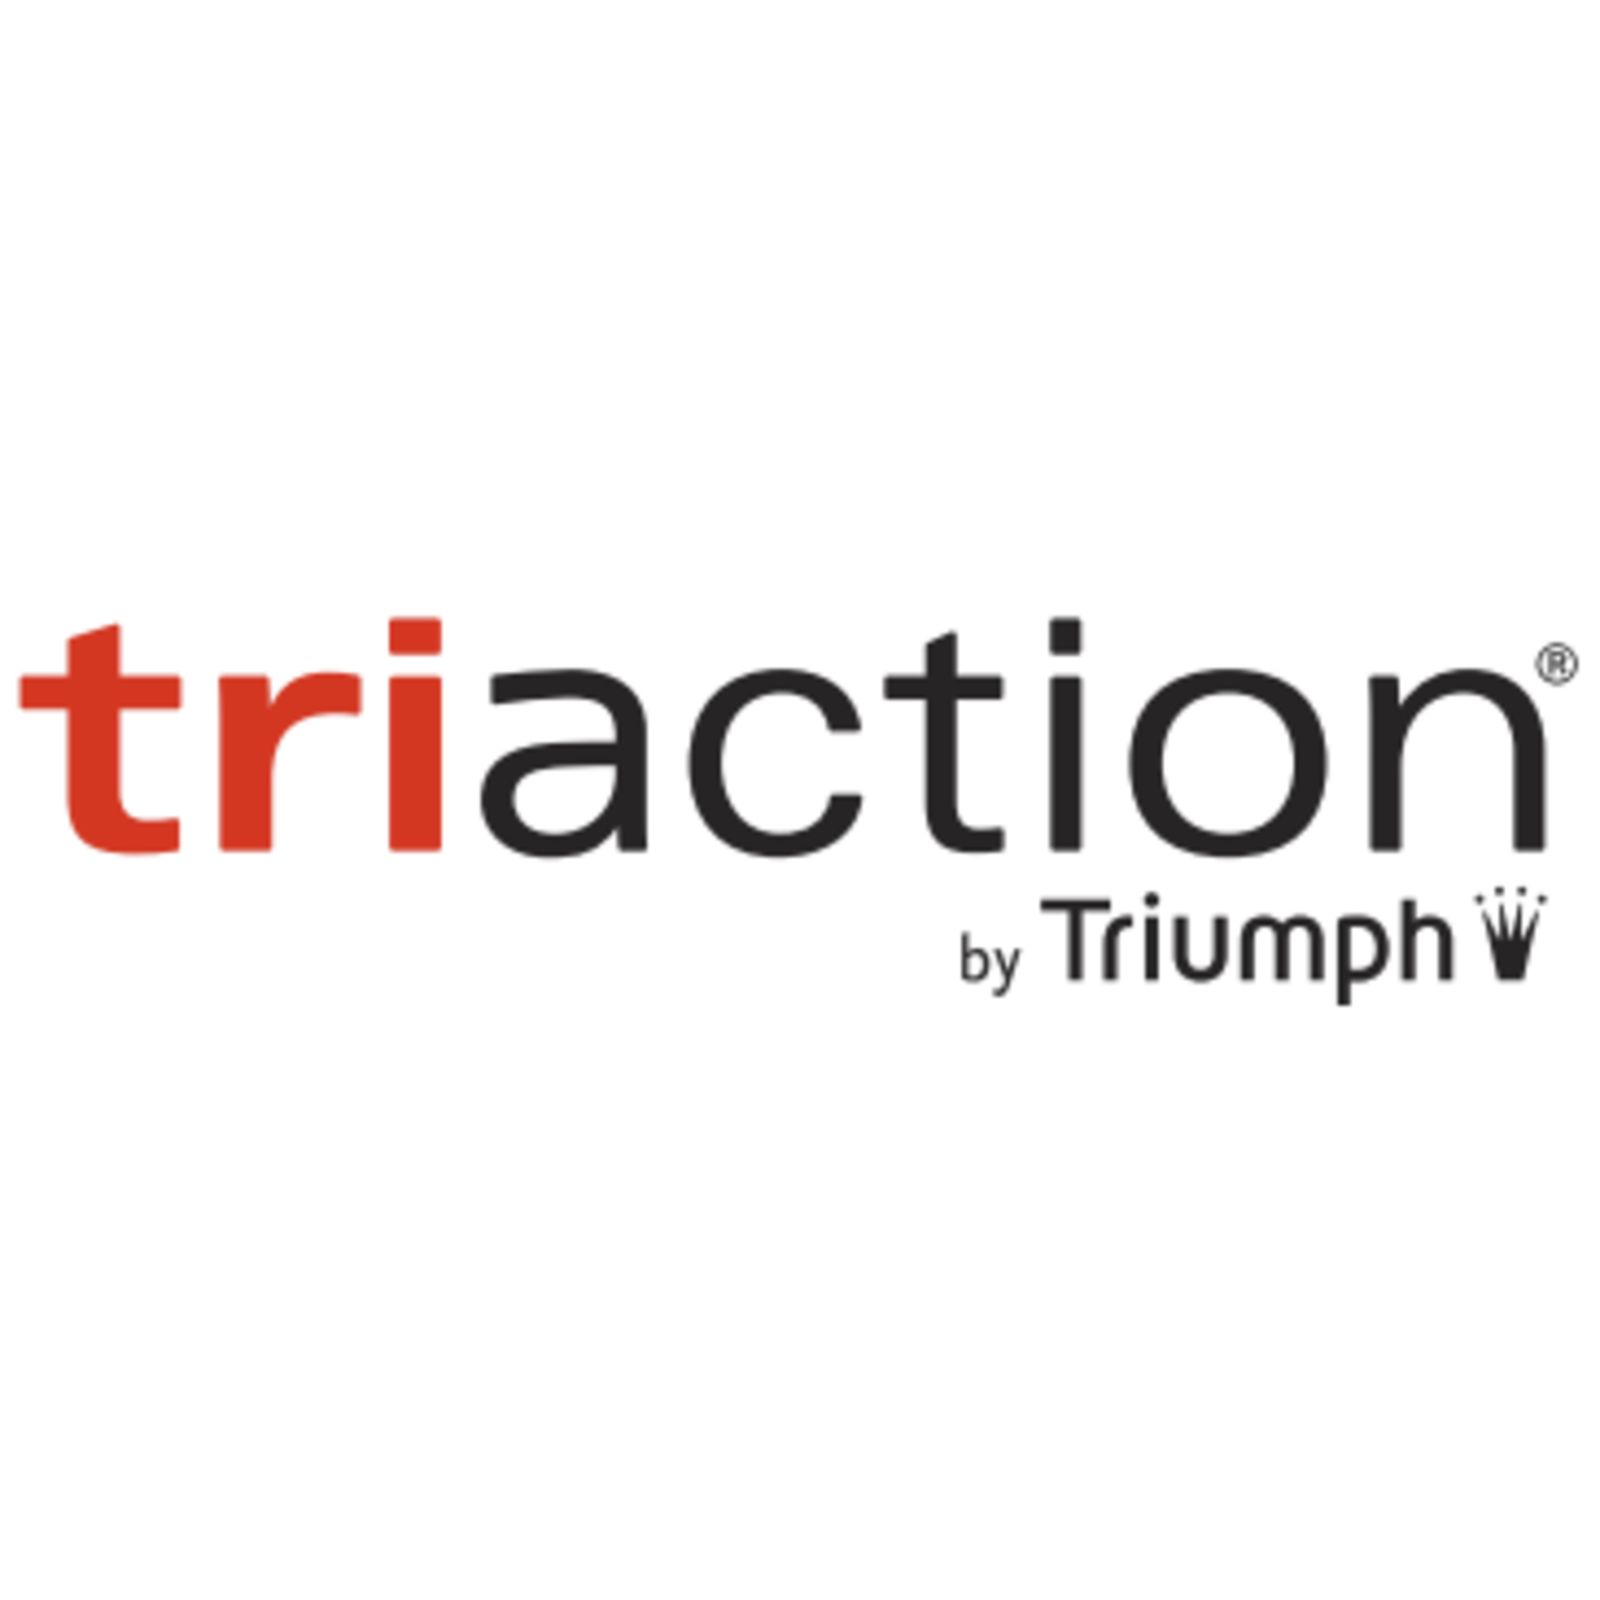 triaction by Triumph® (Bild 1)